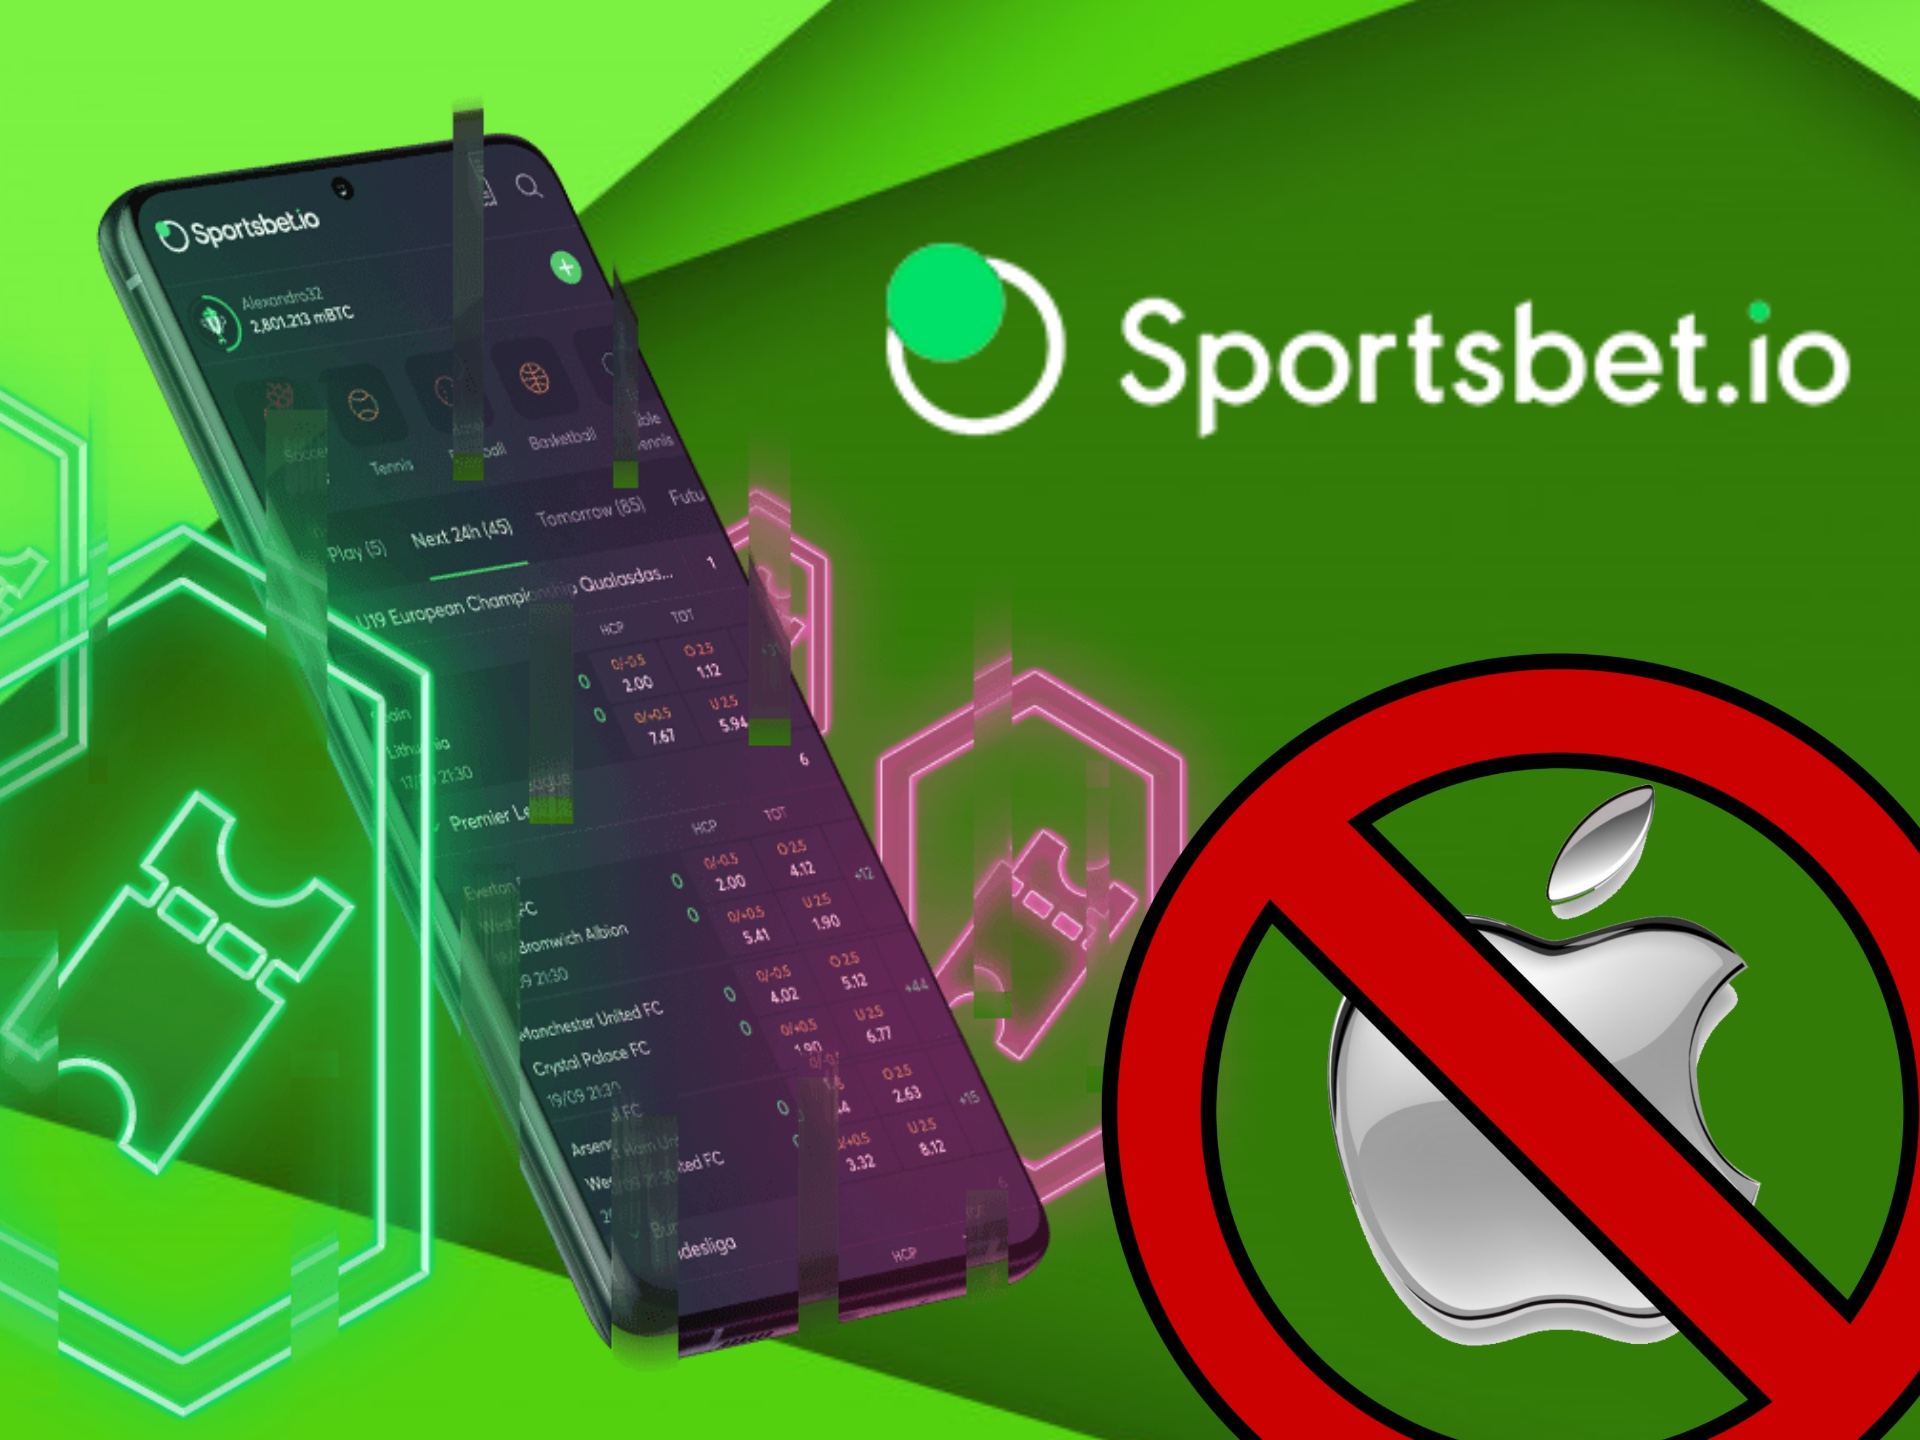 Sportbet.io app for iOS is now not available and you should use mobile version.